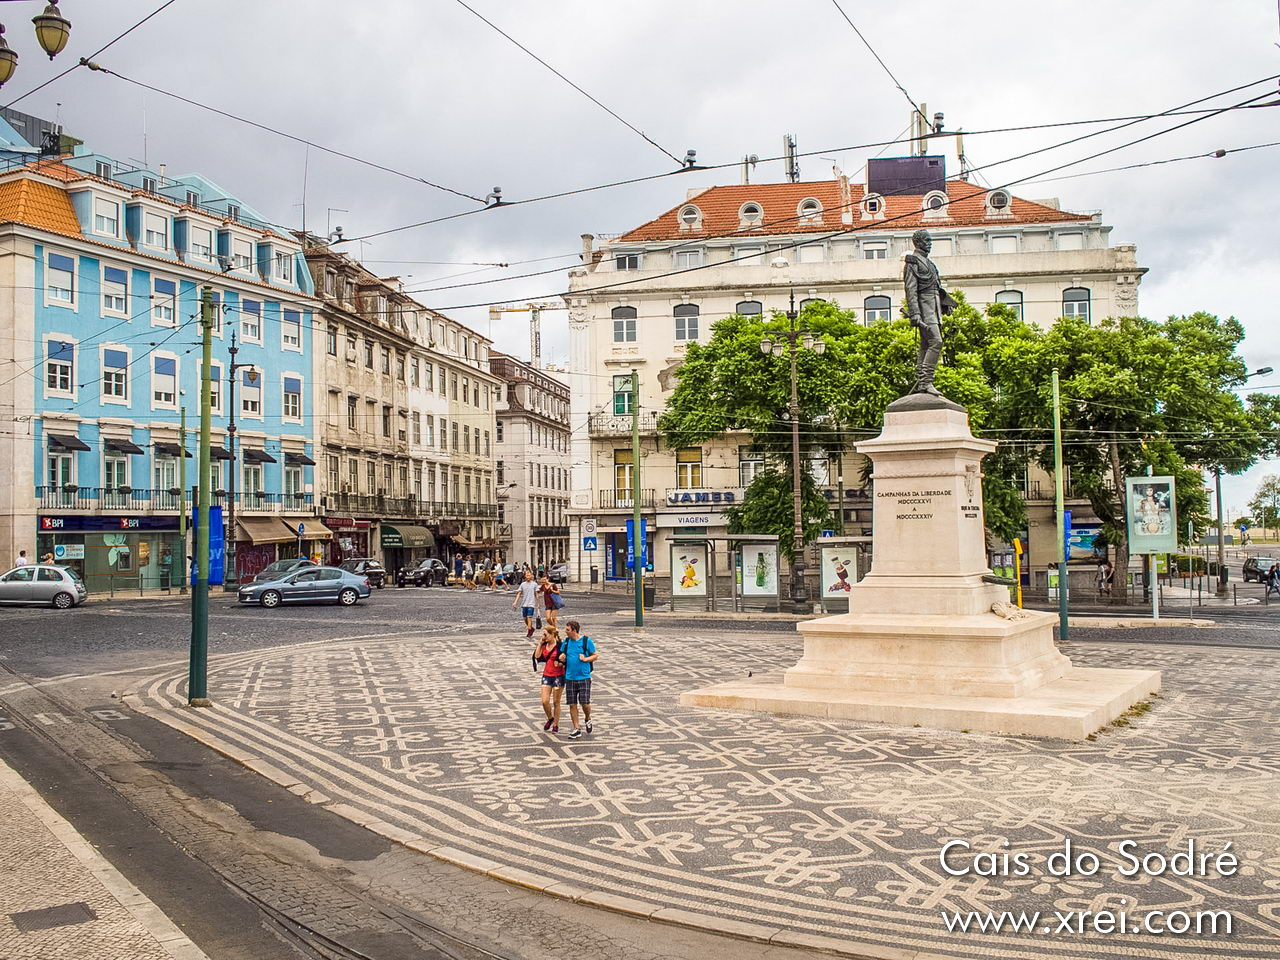 Cais do Sodré has harmonious architecture buildings, good infrastructure, and is a connection point to the main districts of the city center, being within walking distance of Bairro Alto, Chiado, Terreiro do Paço and other central districts